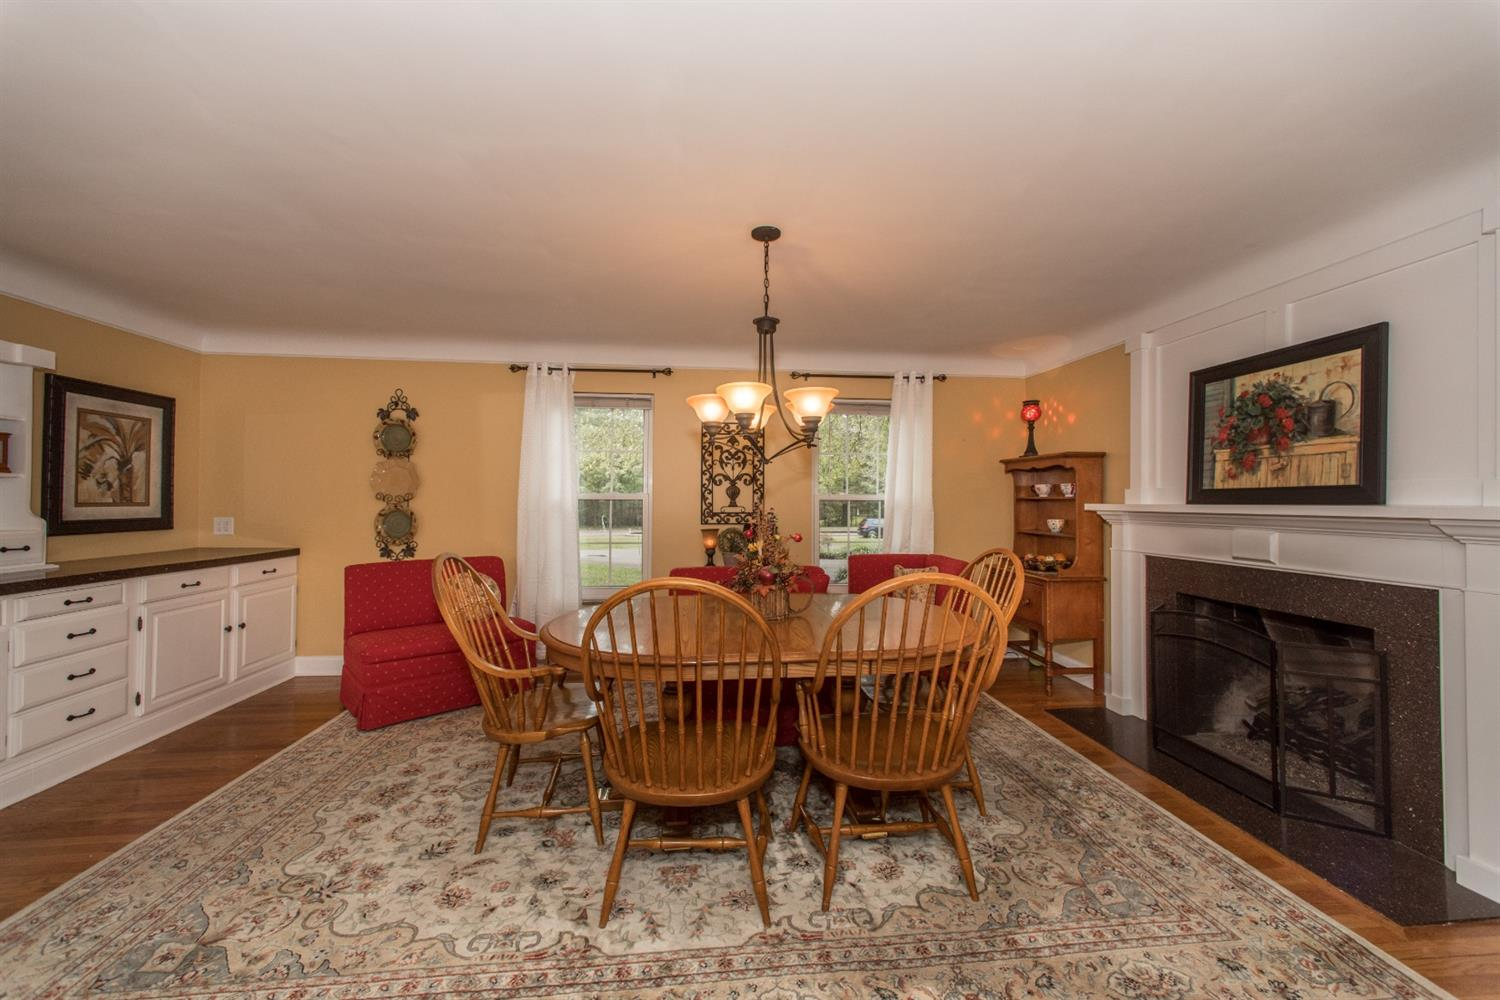 Property for sale at 207 S Lebanon Road, Loveland,  OH 45140